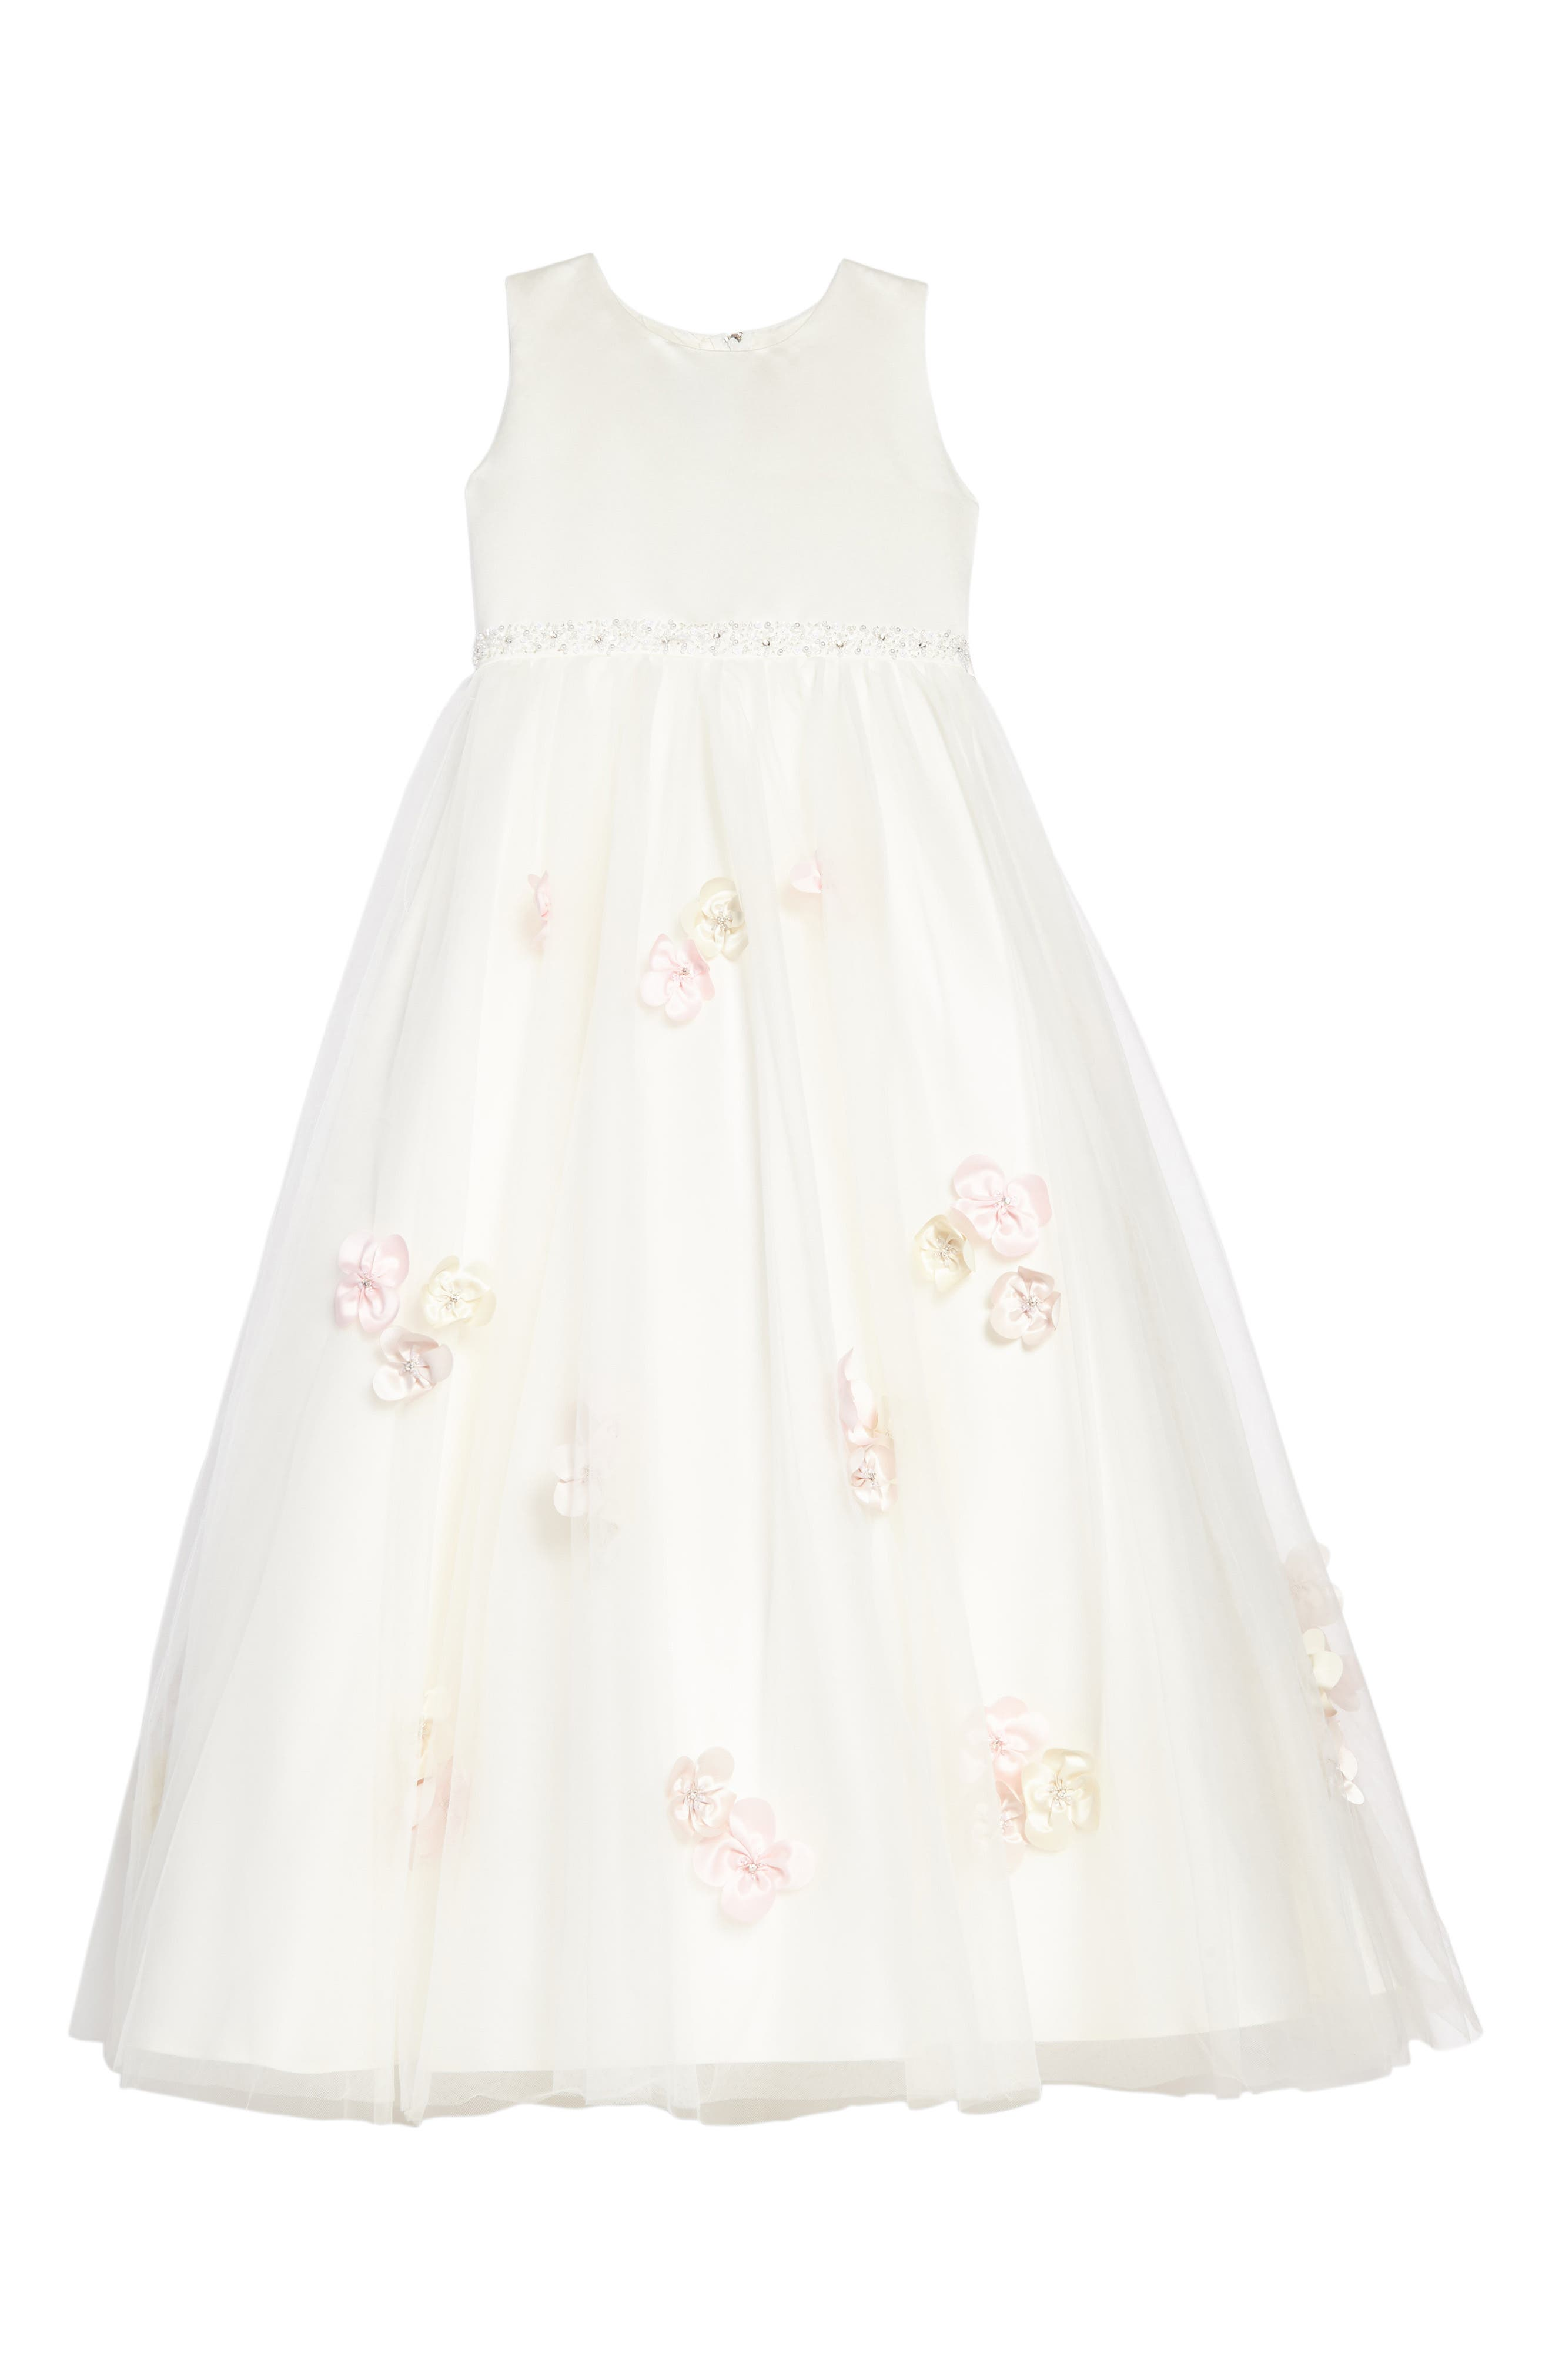 Main Image - Joan Calabrese for Mon Cheri Beaded Satin & Tulle Dress (Toddler Girls, Little Girls & Big Girls)